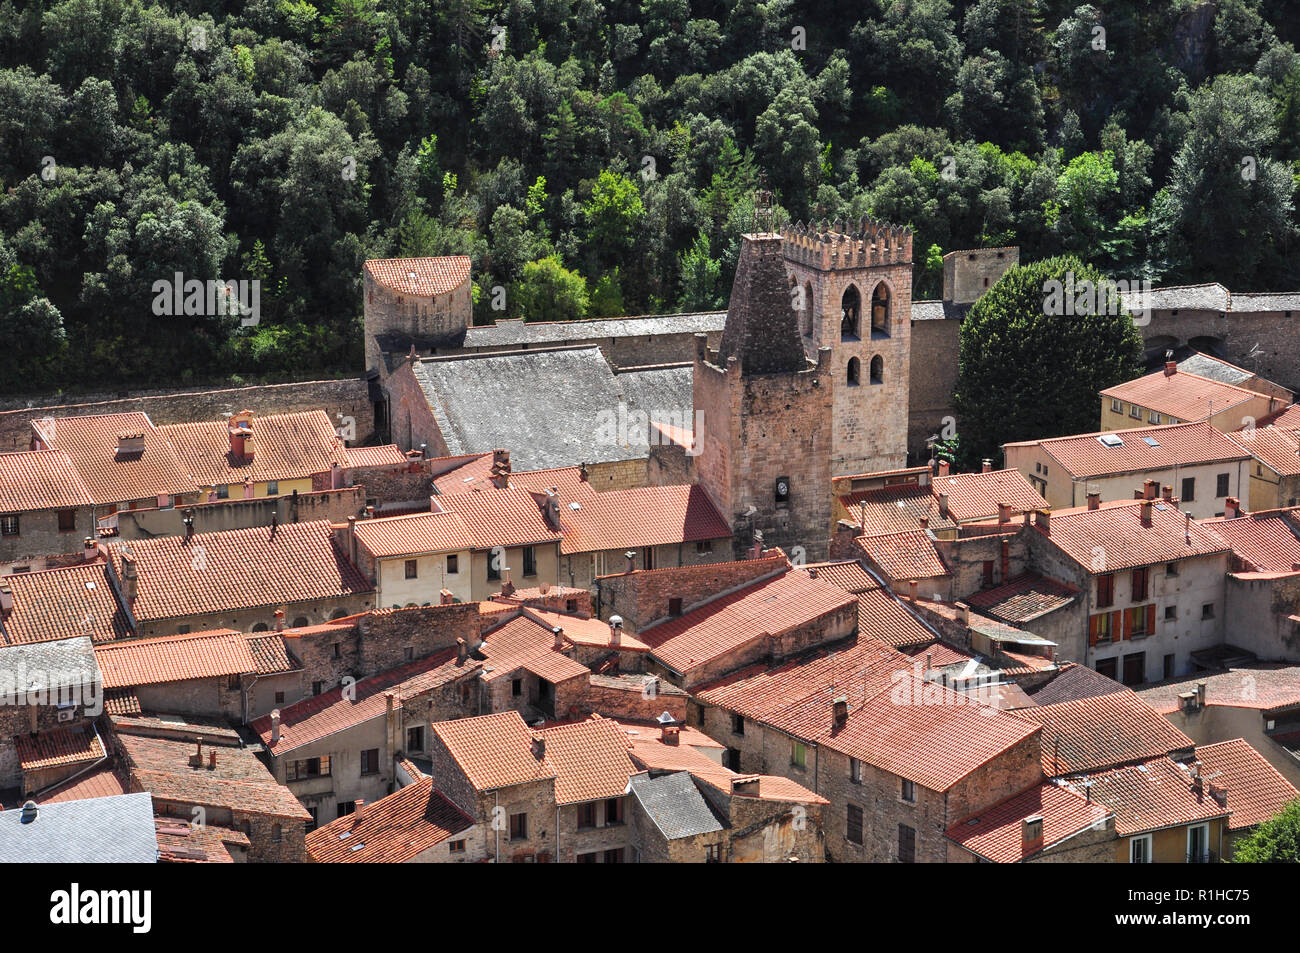 Overview of the village of Villefranche-de-Conflent (from Fort Liberia), Pyrenees-Orientales, Occitanie, France - Stock Image